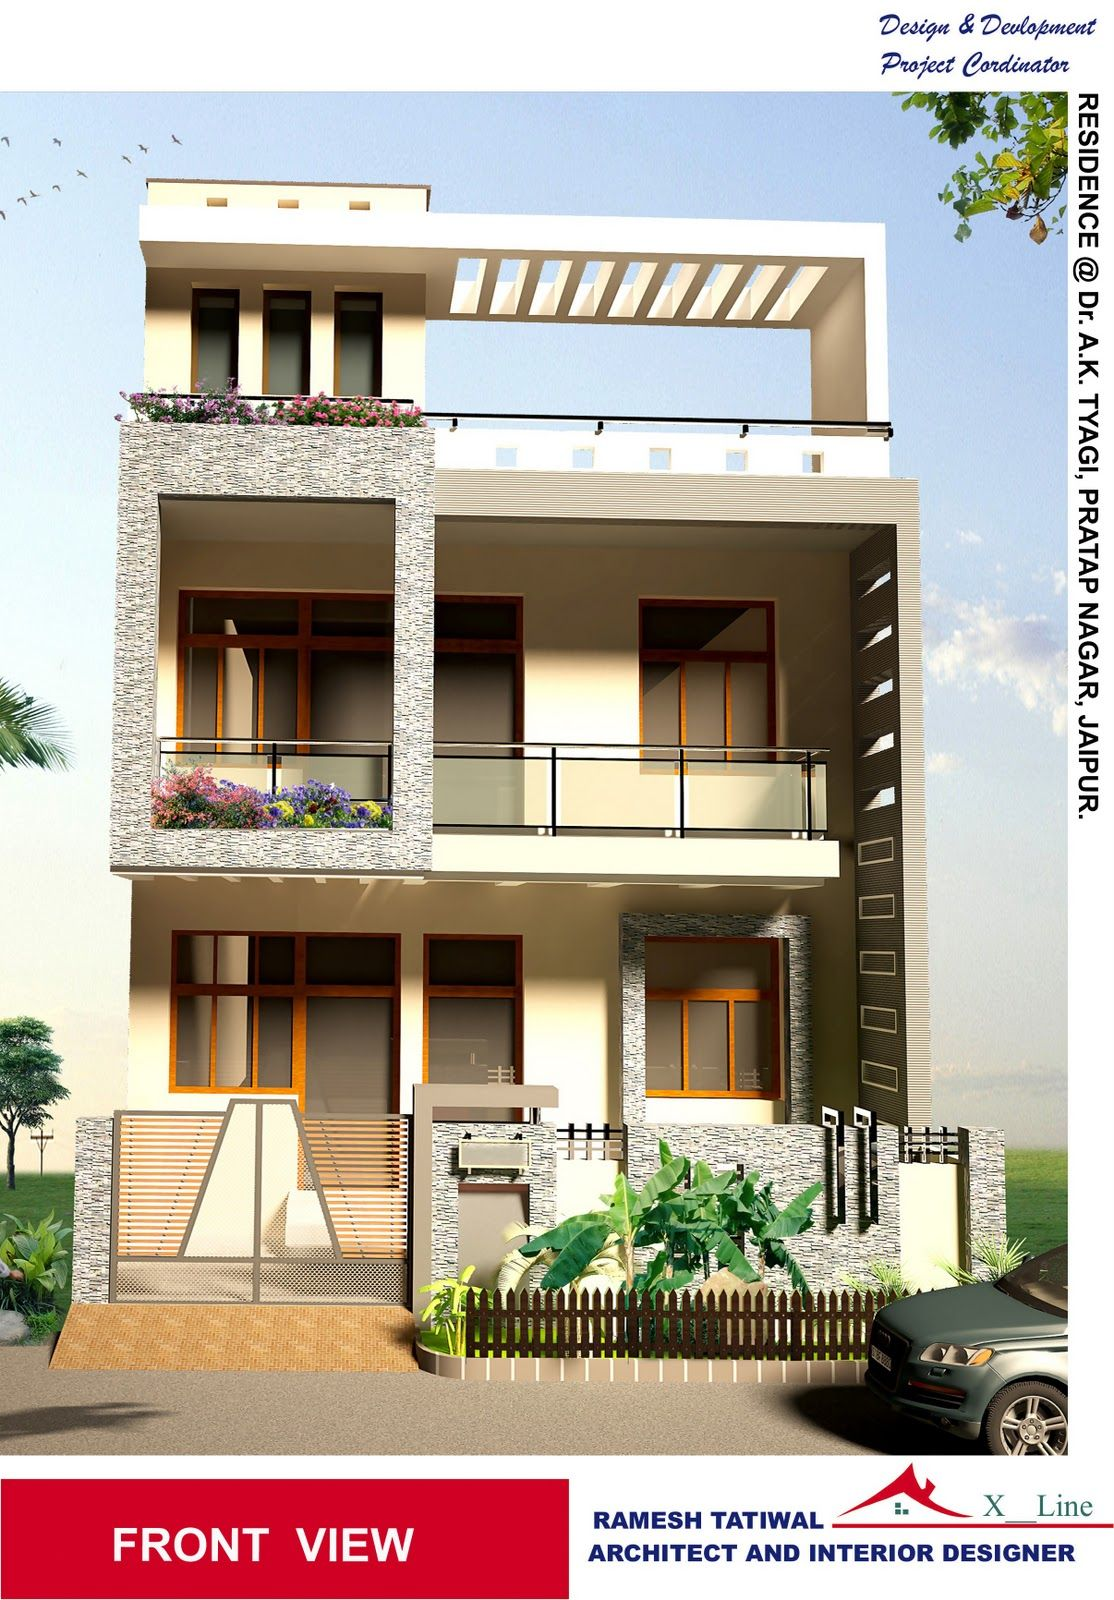 Home design house modern house Homedesign net